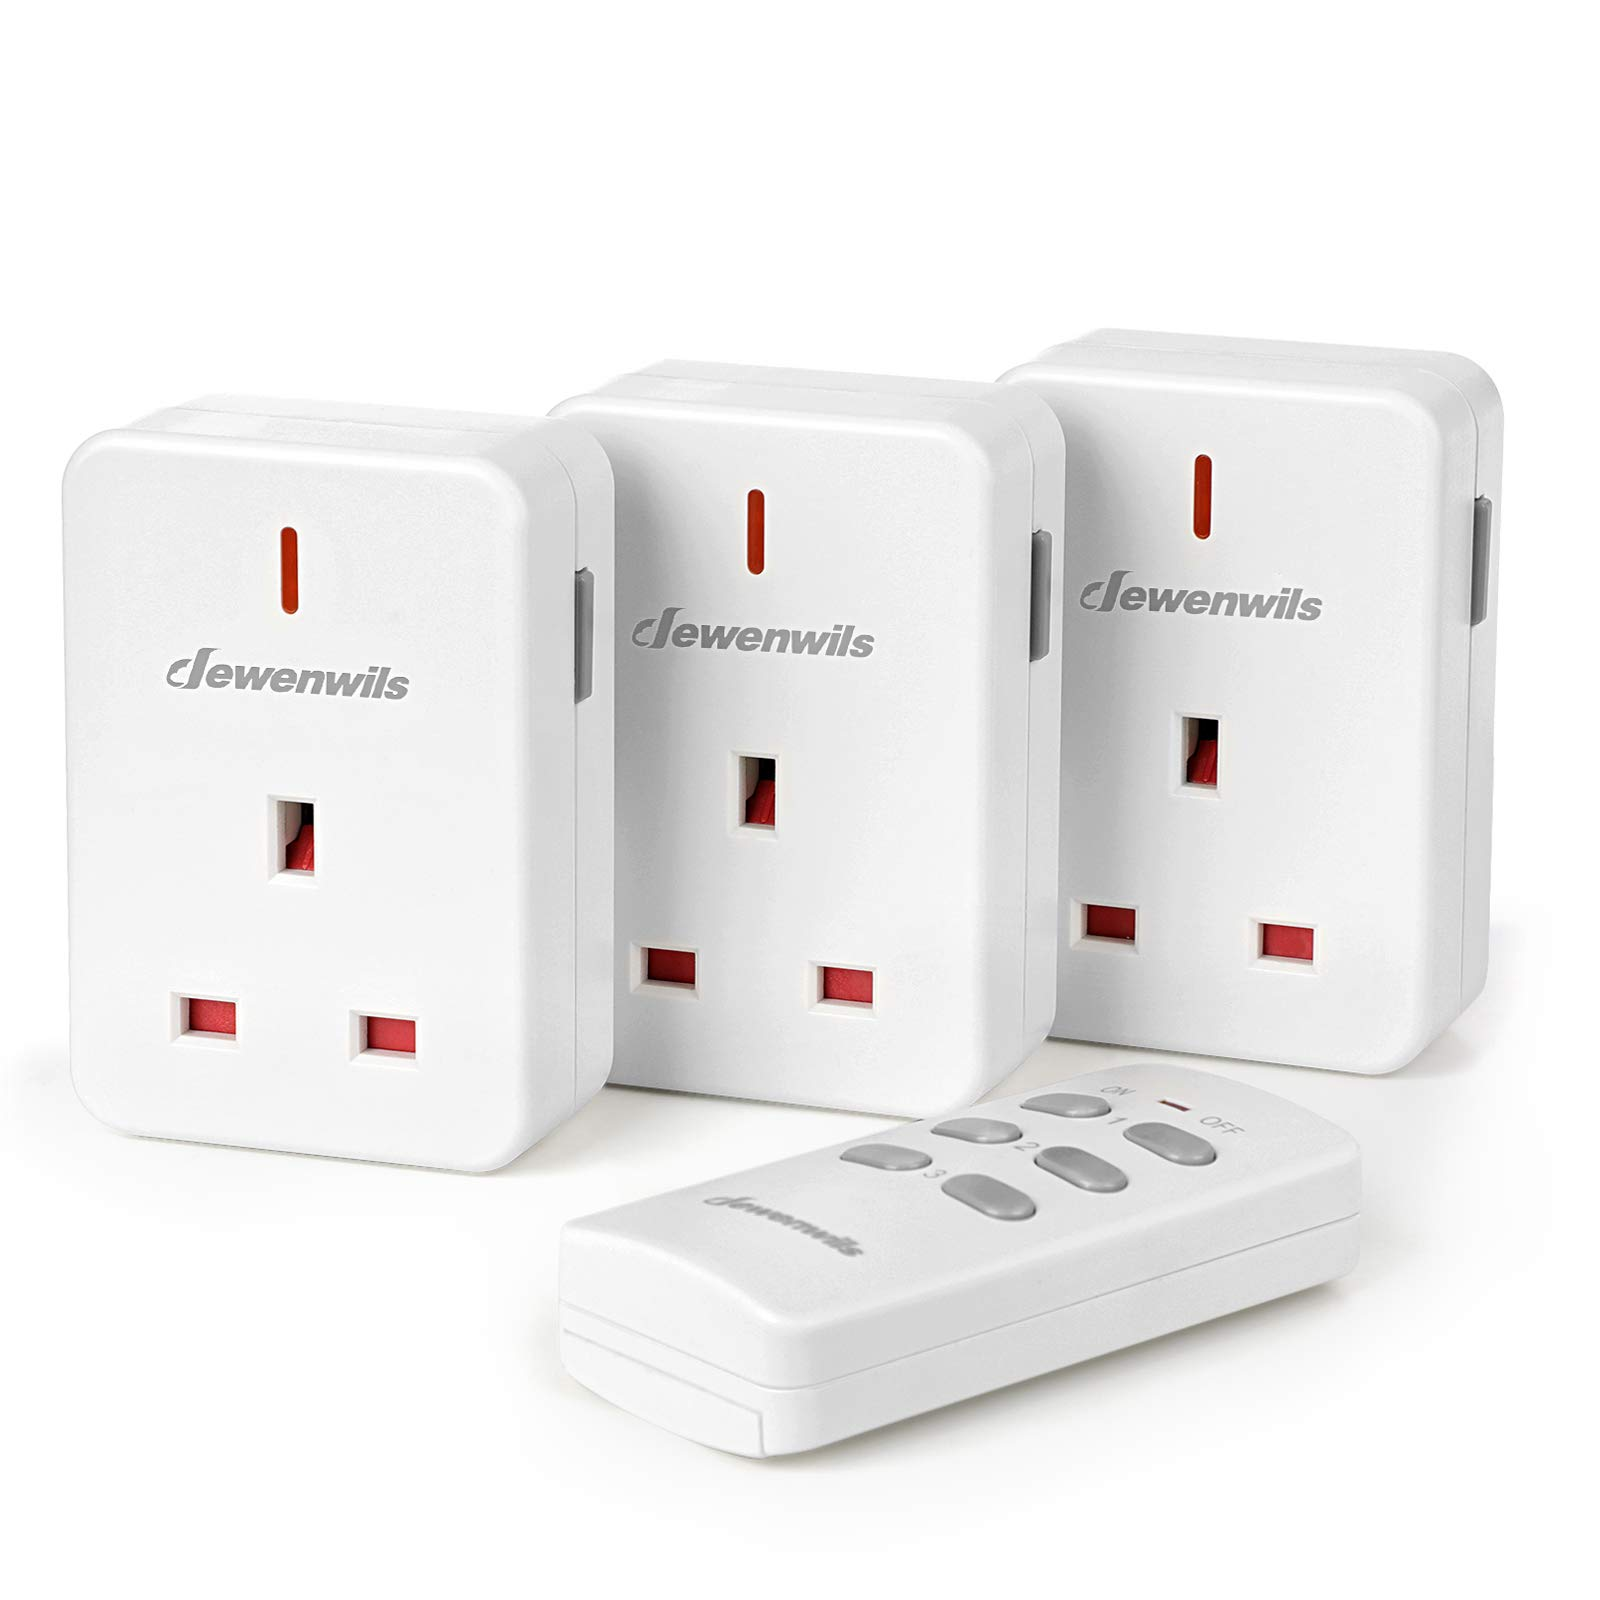 DEWENWILS Remote Control Plug Socket, 13A/3120W Heavy Duty Wireless Light Switch, 30m/100ft Long Range, Programmable, CE and RoHS Listed, 3 Pack Sockets and 1 Remote